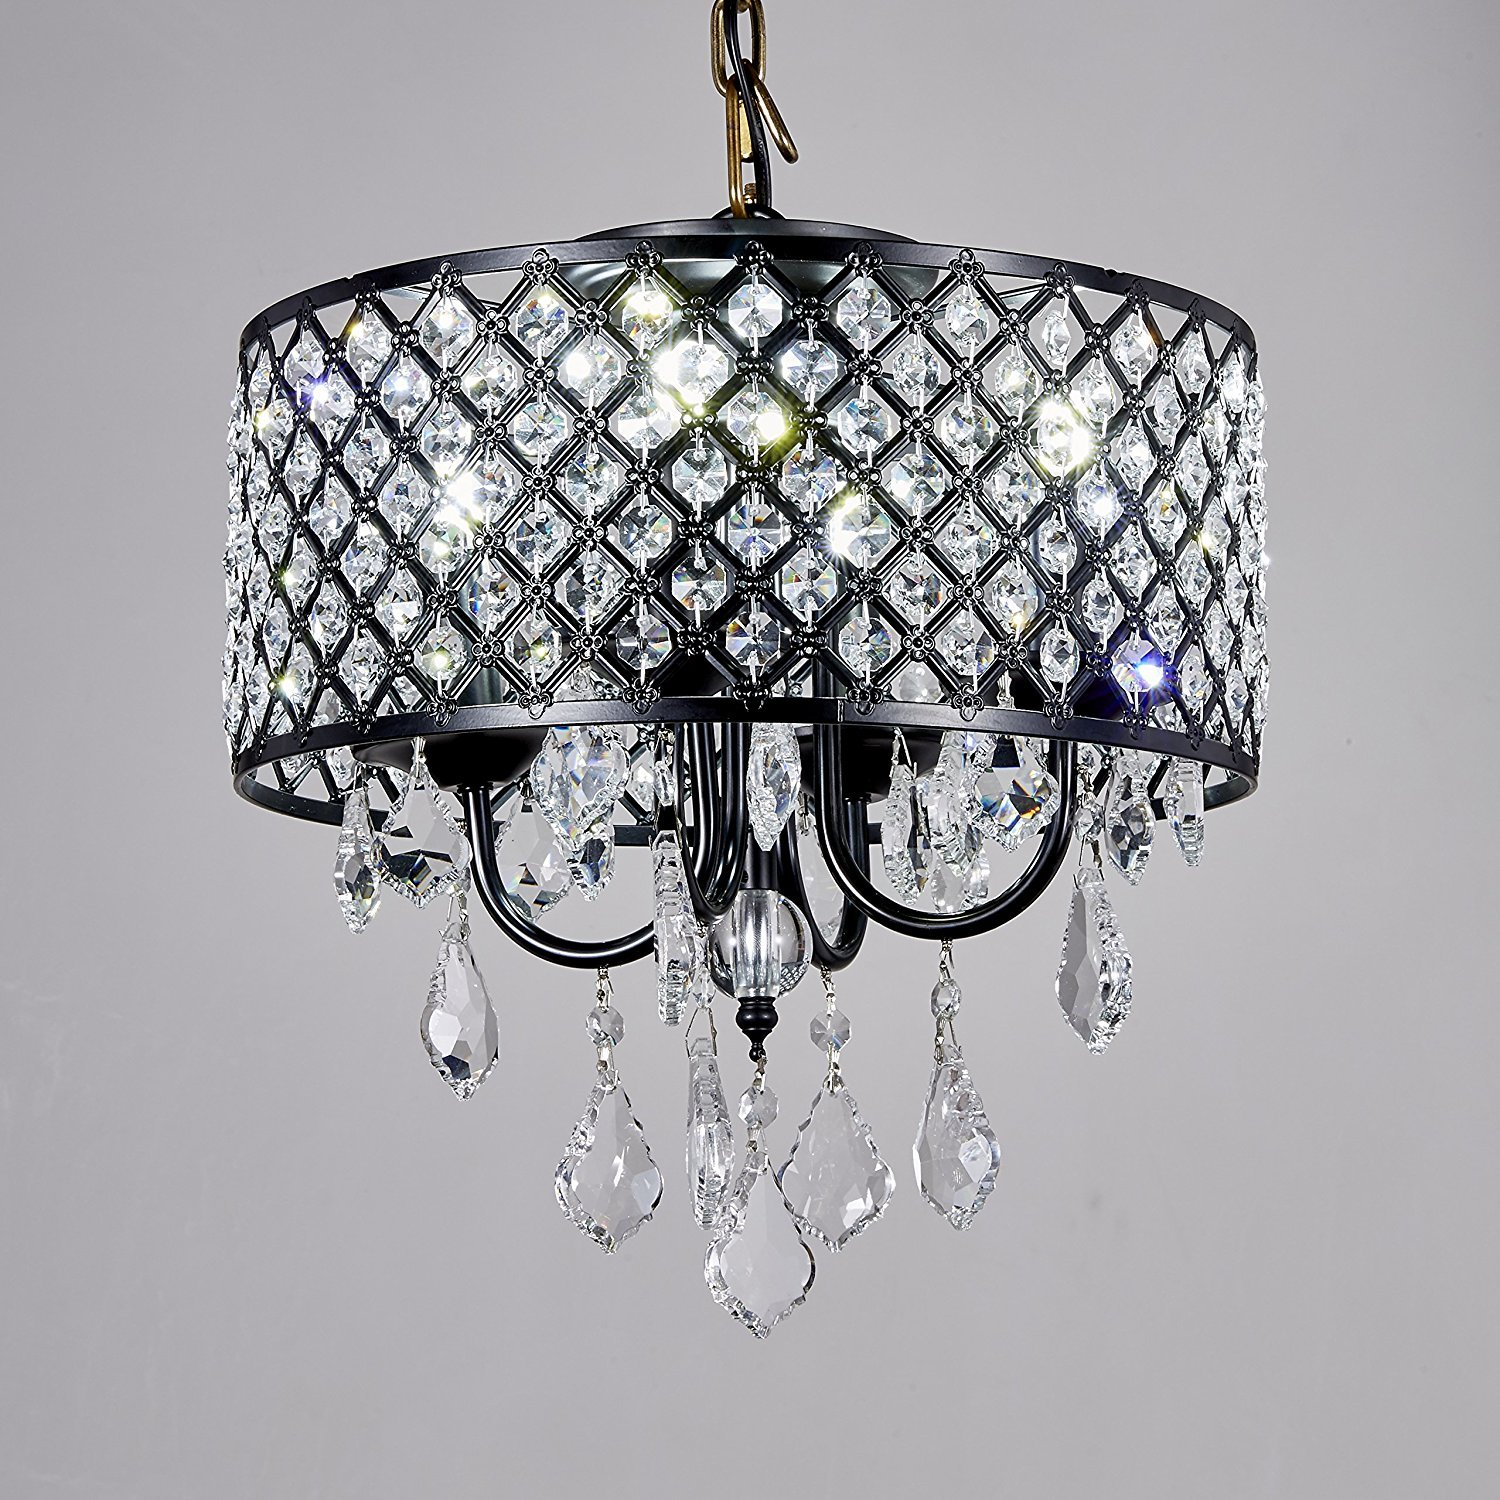 Broadway Black Classic Crystal Chandeliers Modern Lamps